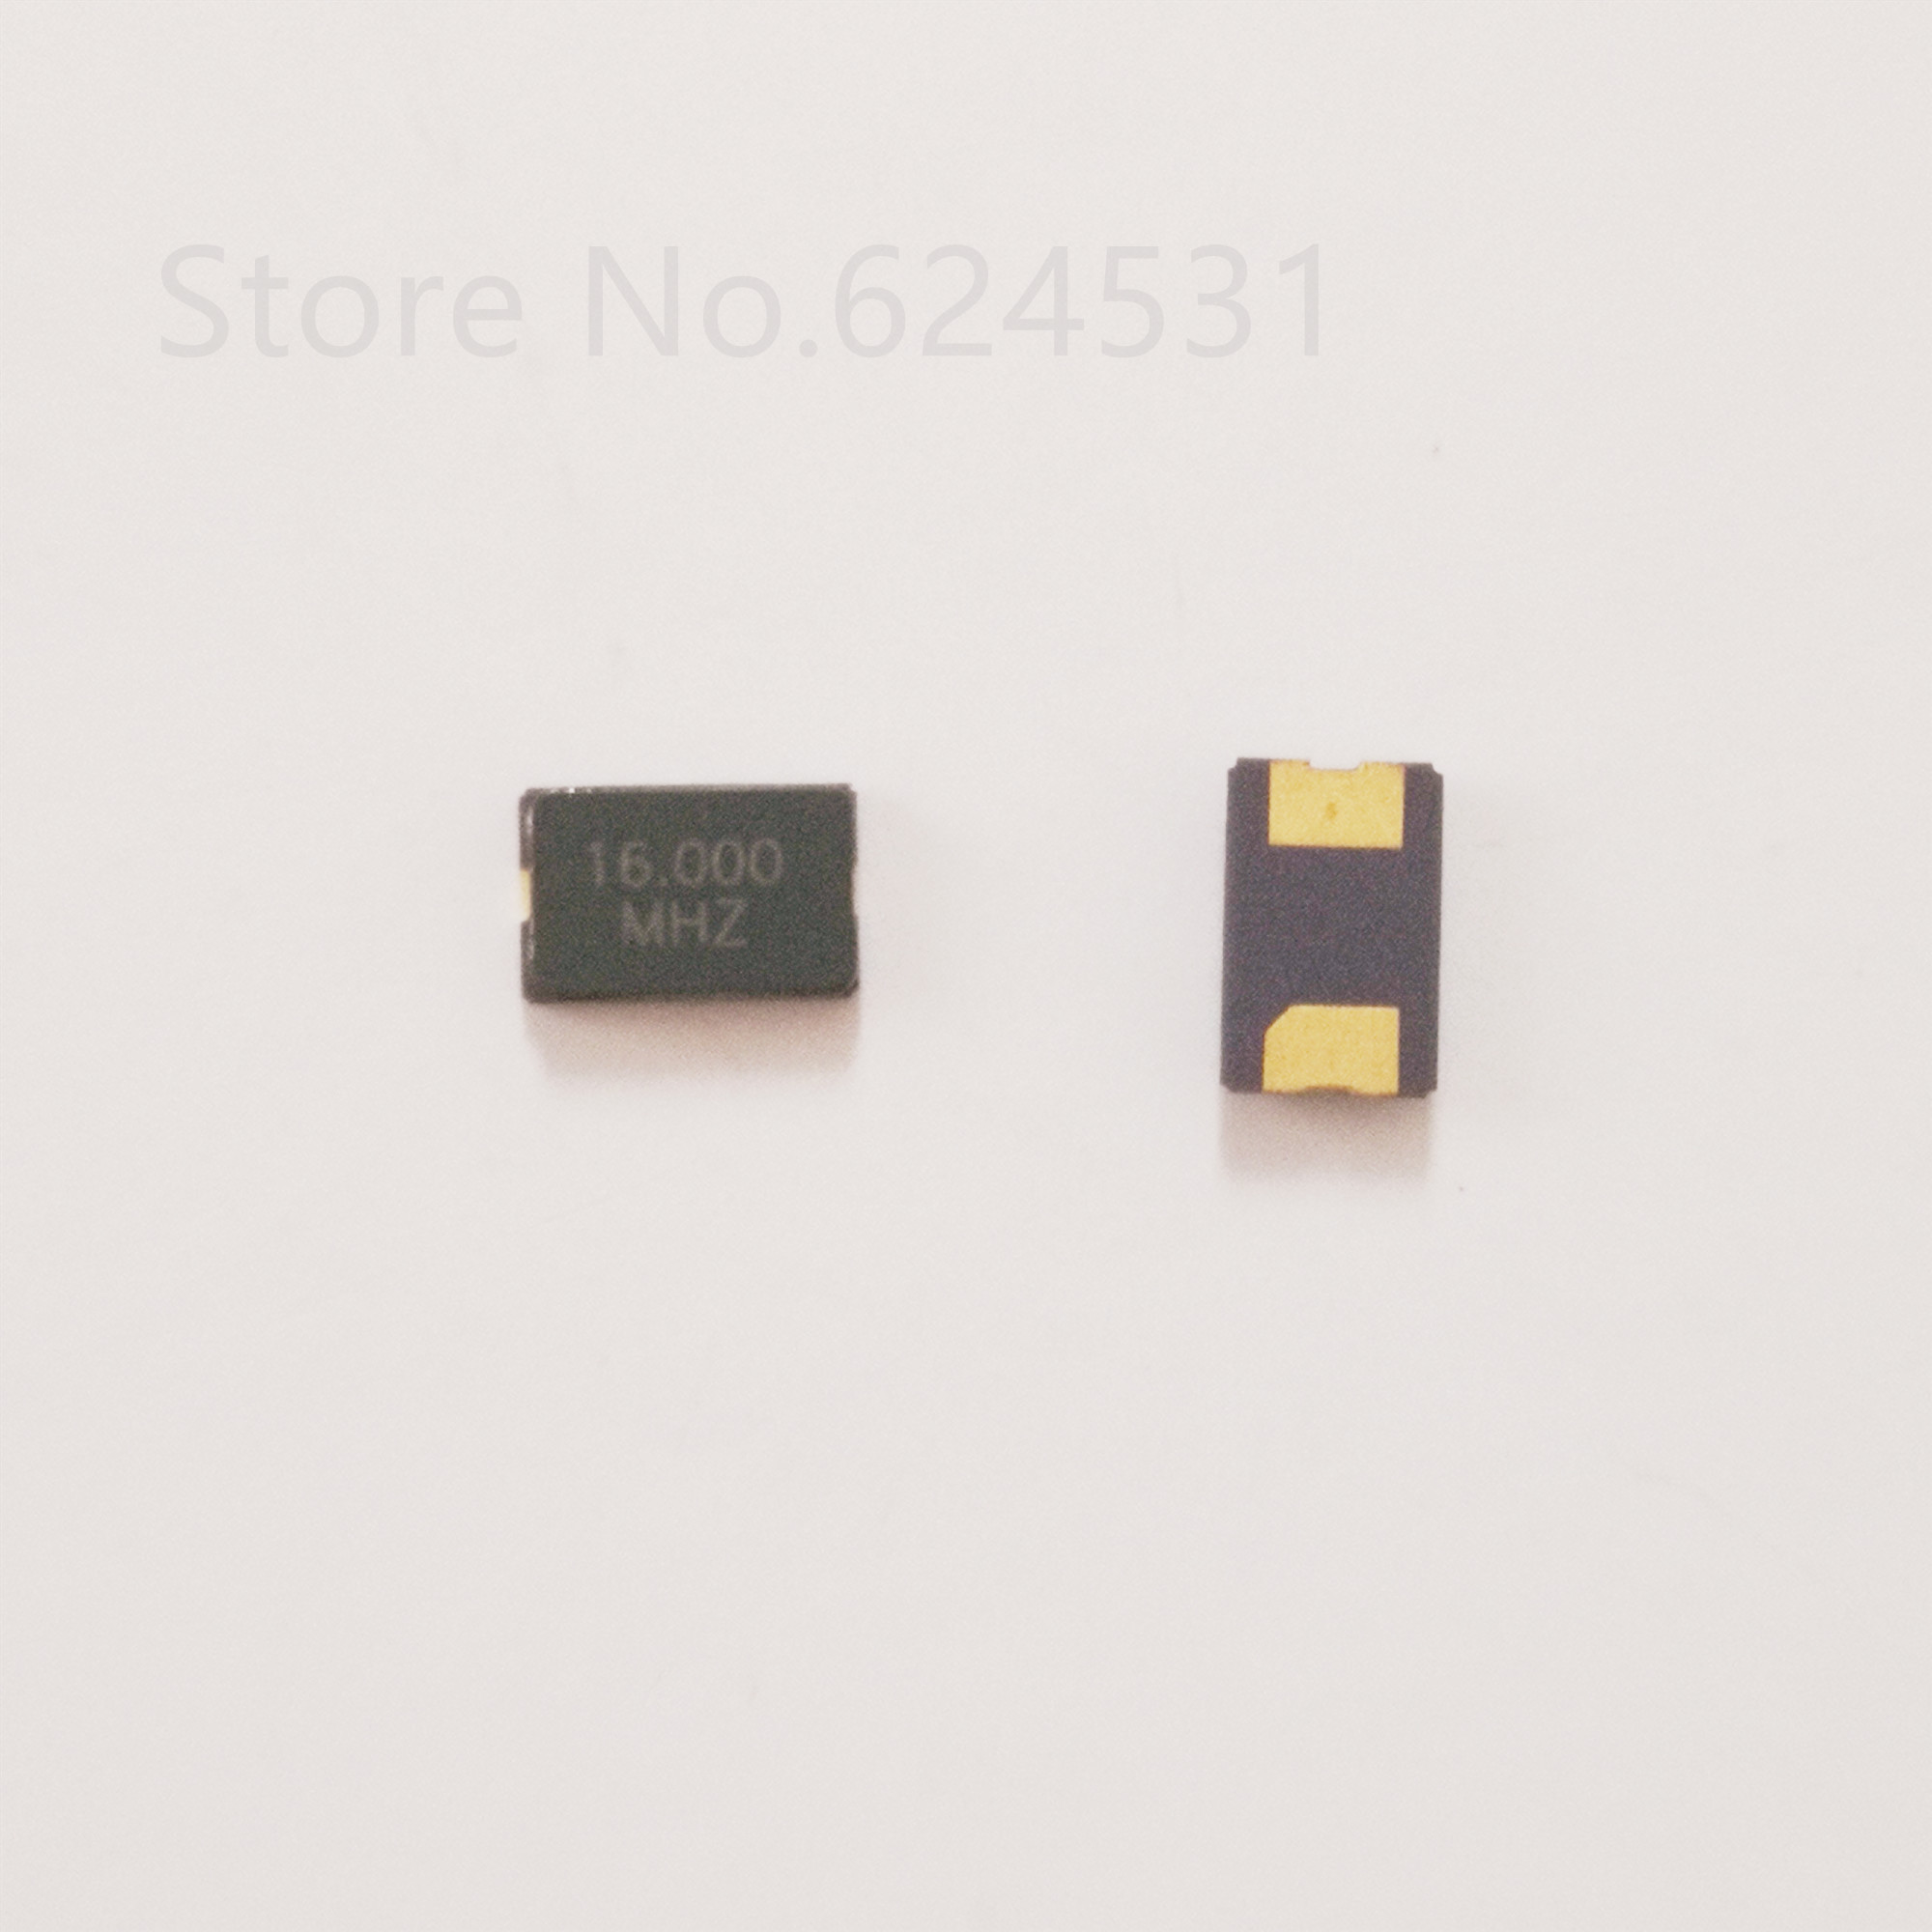 10pcs Patch Passive Crystal Oscillator 5032 16MHZ 2P 5*3.2 16.000MHZ Two Feet 16M